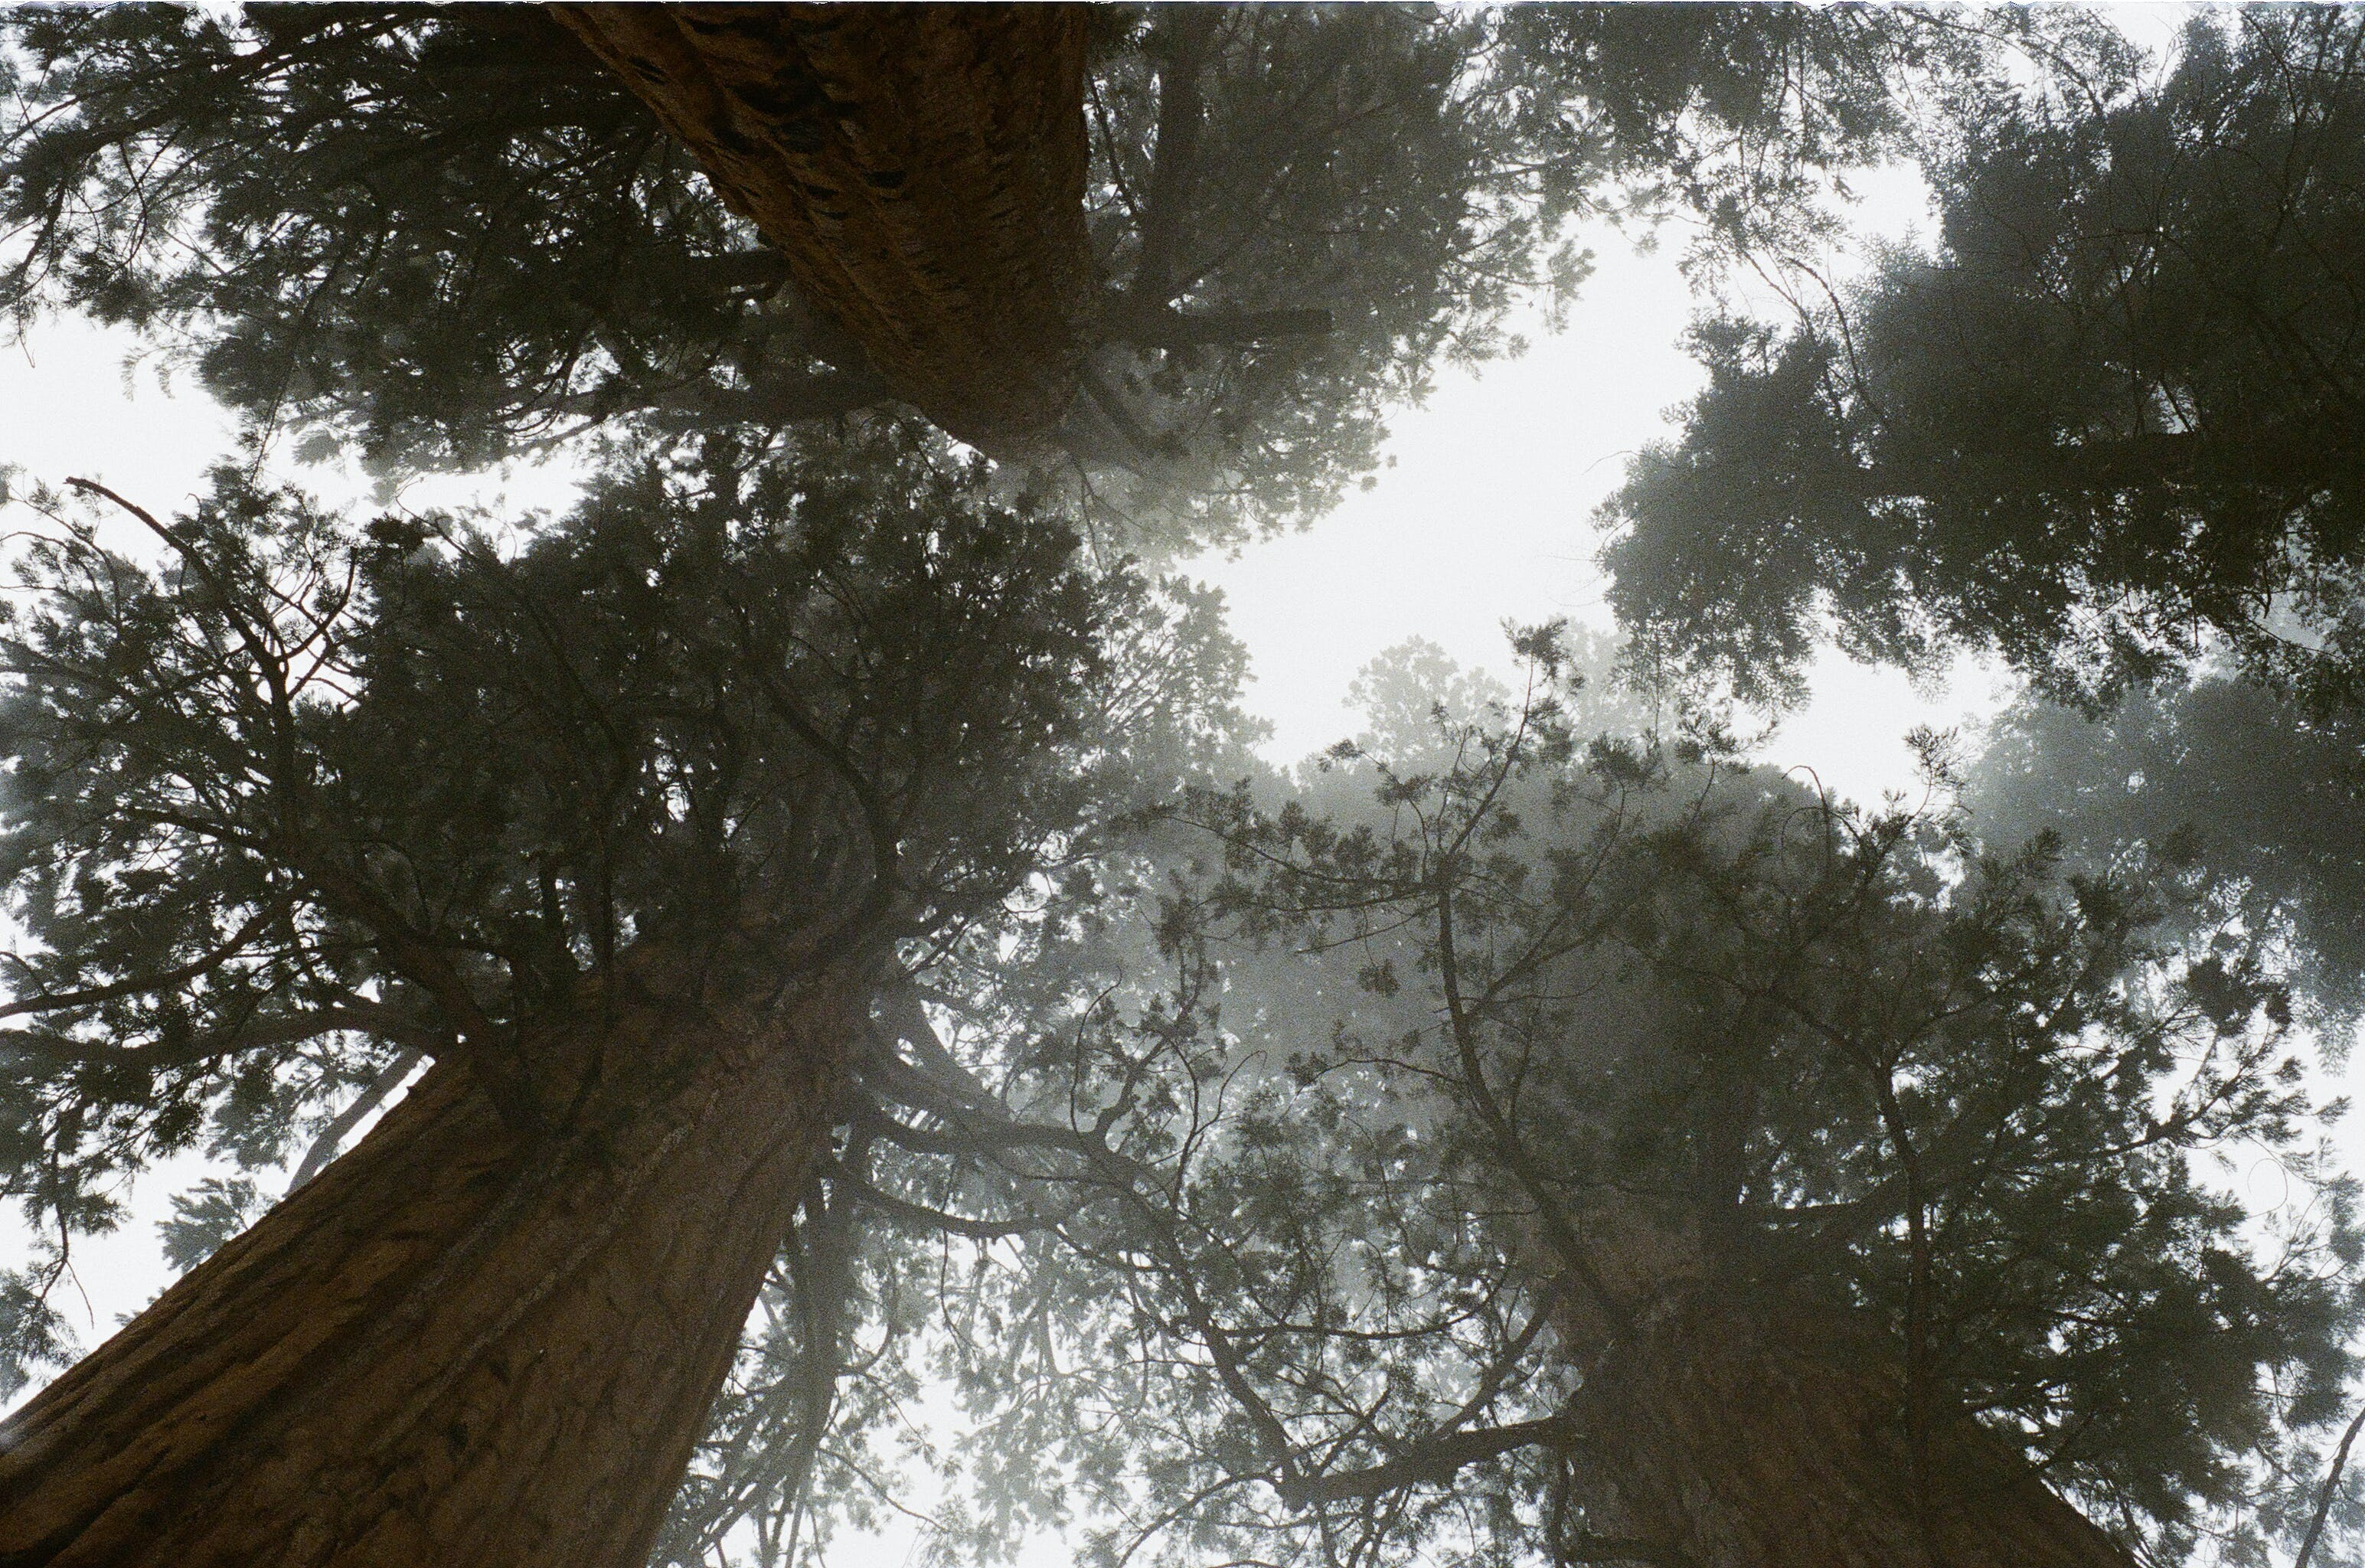 Worm's Eye View Photography of Tree